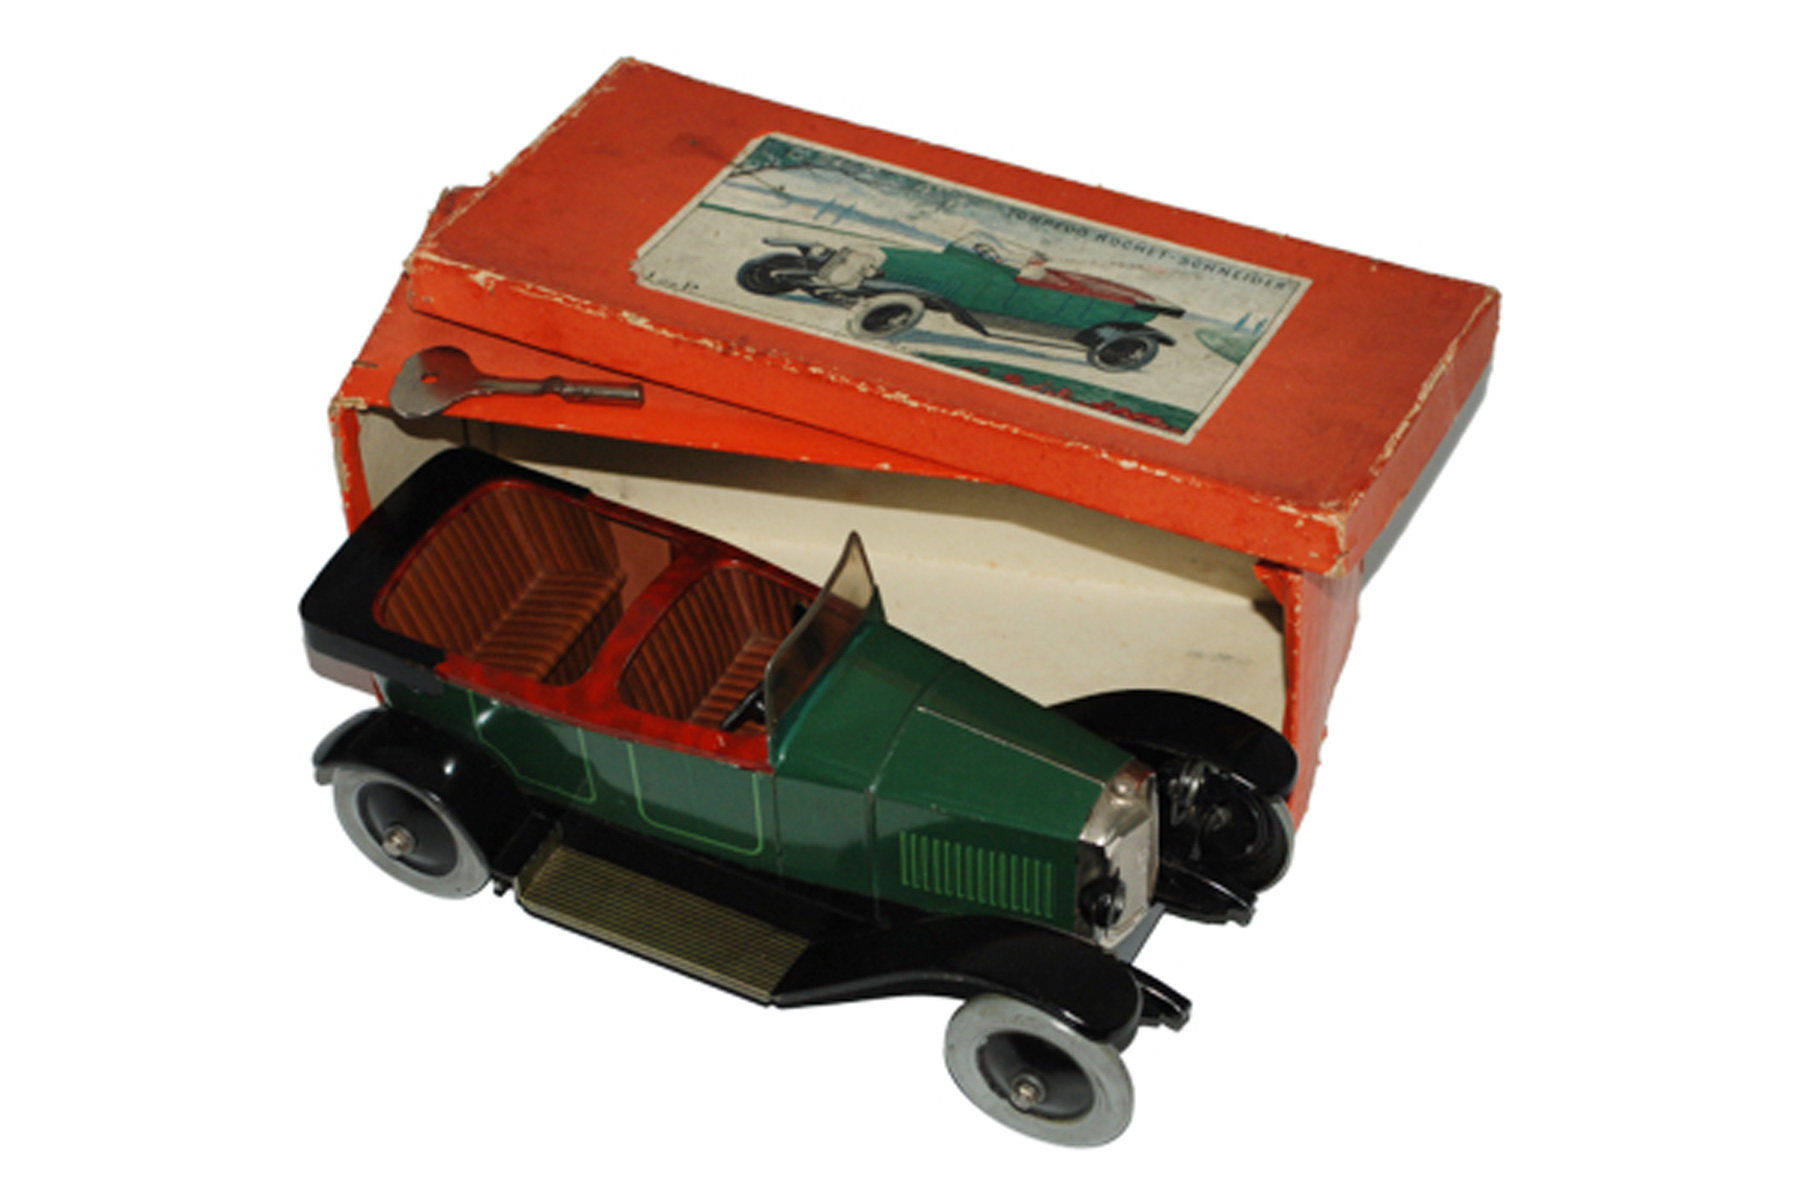 JEP (French) Torpedo Rocket open car, tin, original box, est. $3,000-$4,000. RSL Auction Co. image.